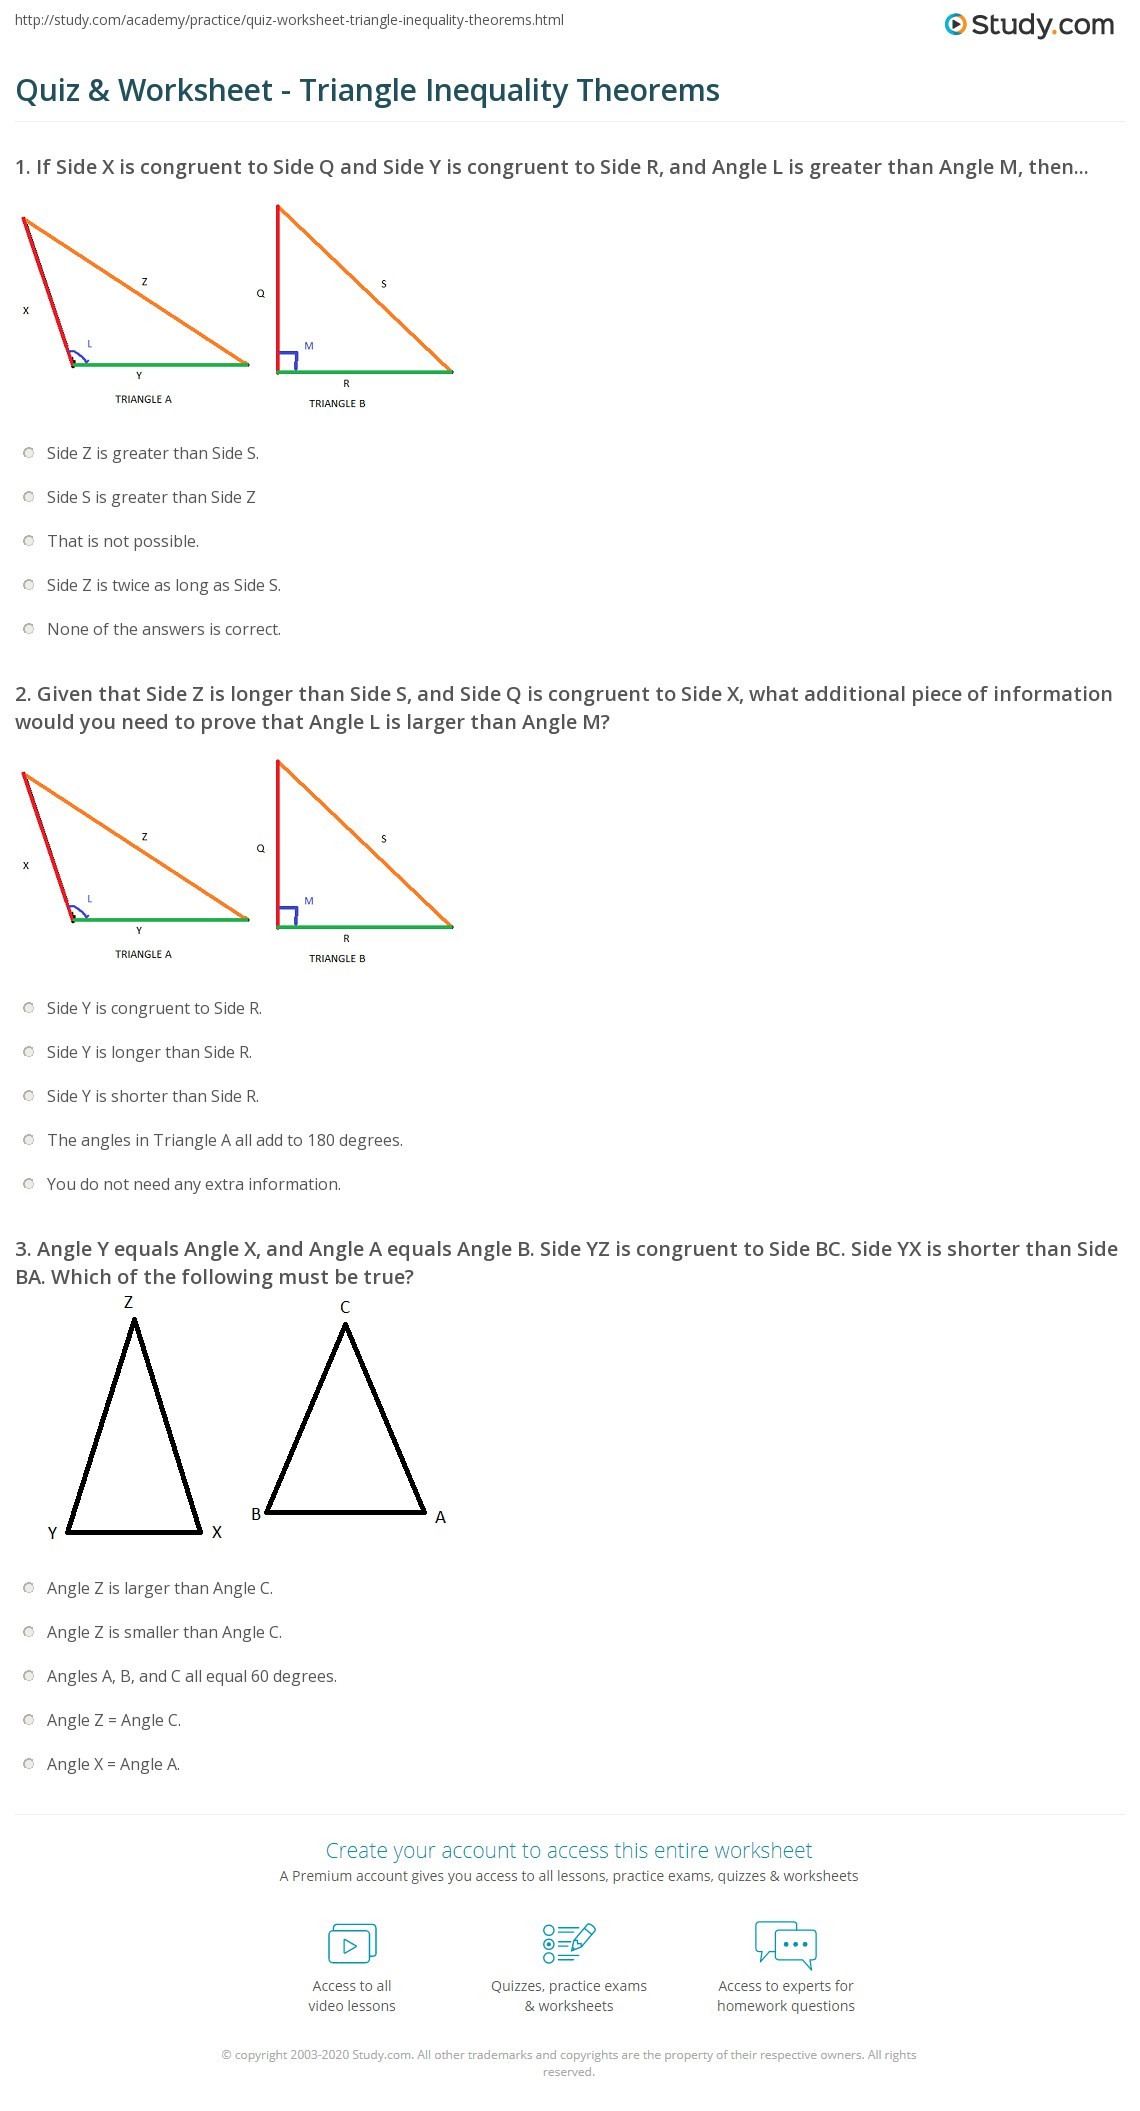 Proving Triangles Congruent Worksheet Answers Quiz & Worksheet Triangle Inequality theorems